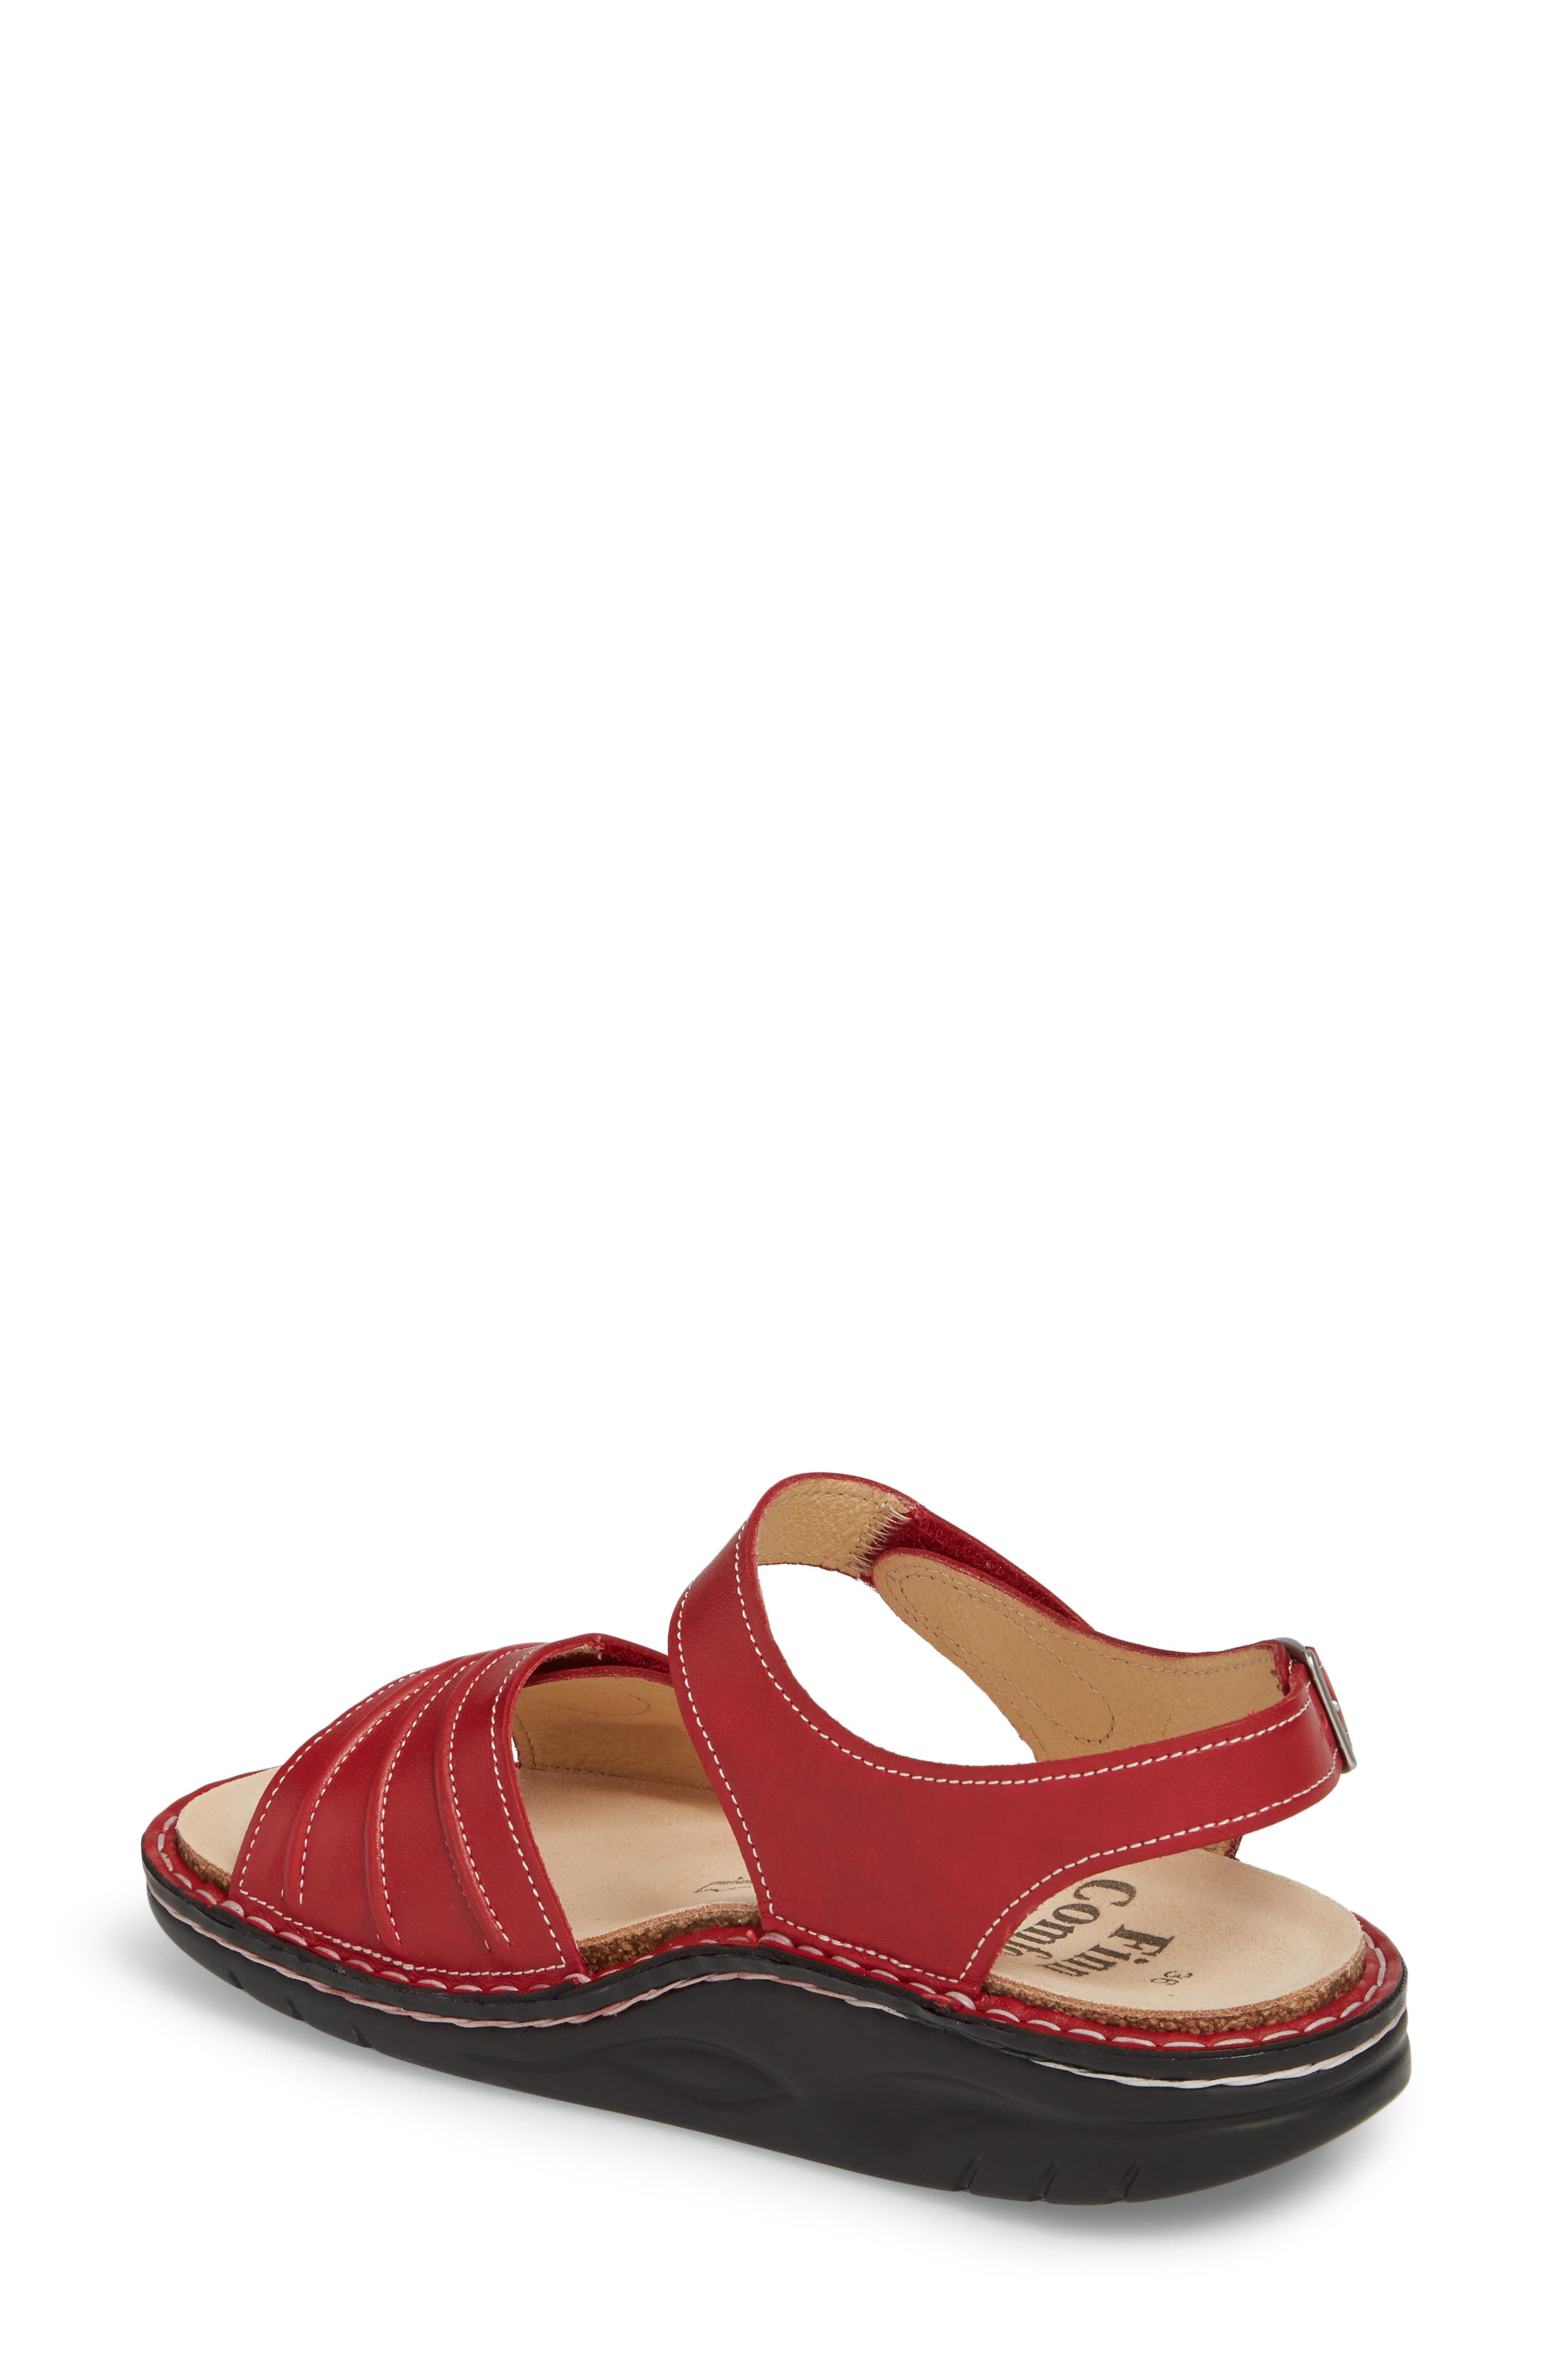 FINNAMIC by Finn Comfort 'Sausalito' Sandal,                             Alternate thumbnail 2, color,                             RED LEATHER